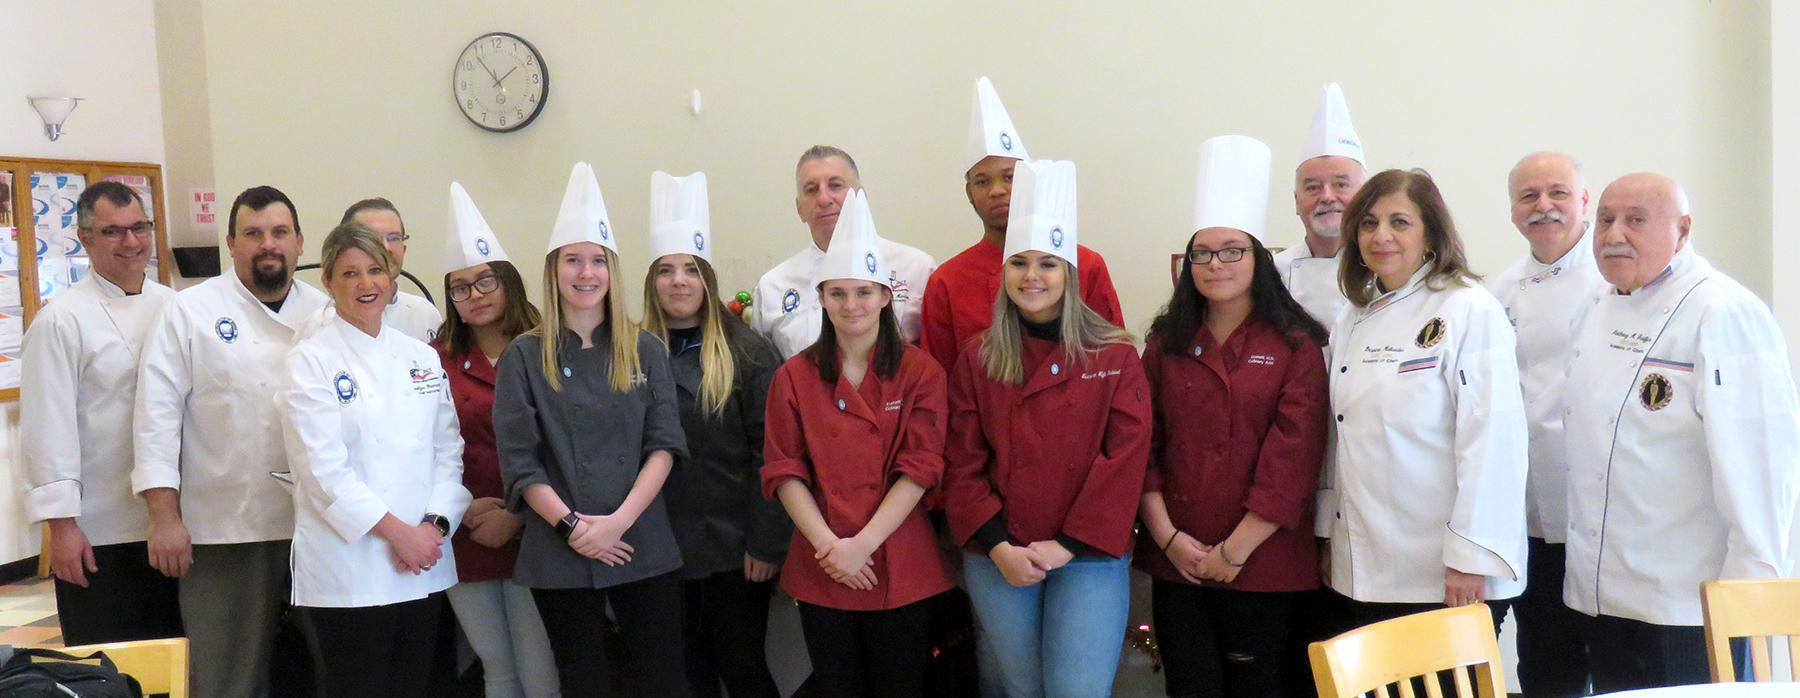 A group of EHS students, faculty, and Epicurean Club of Boston members